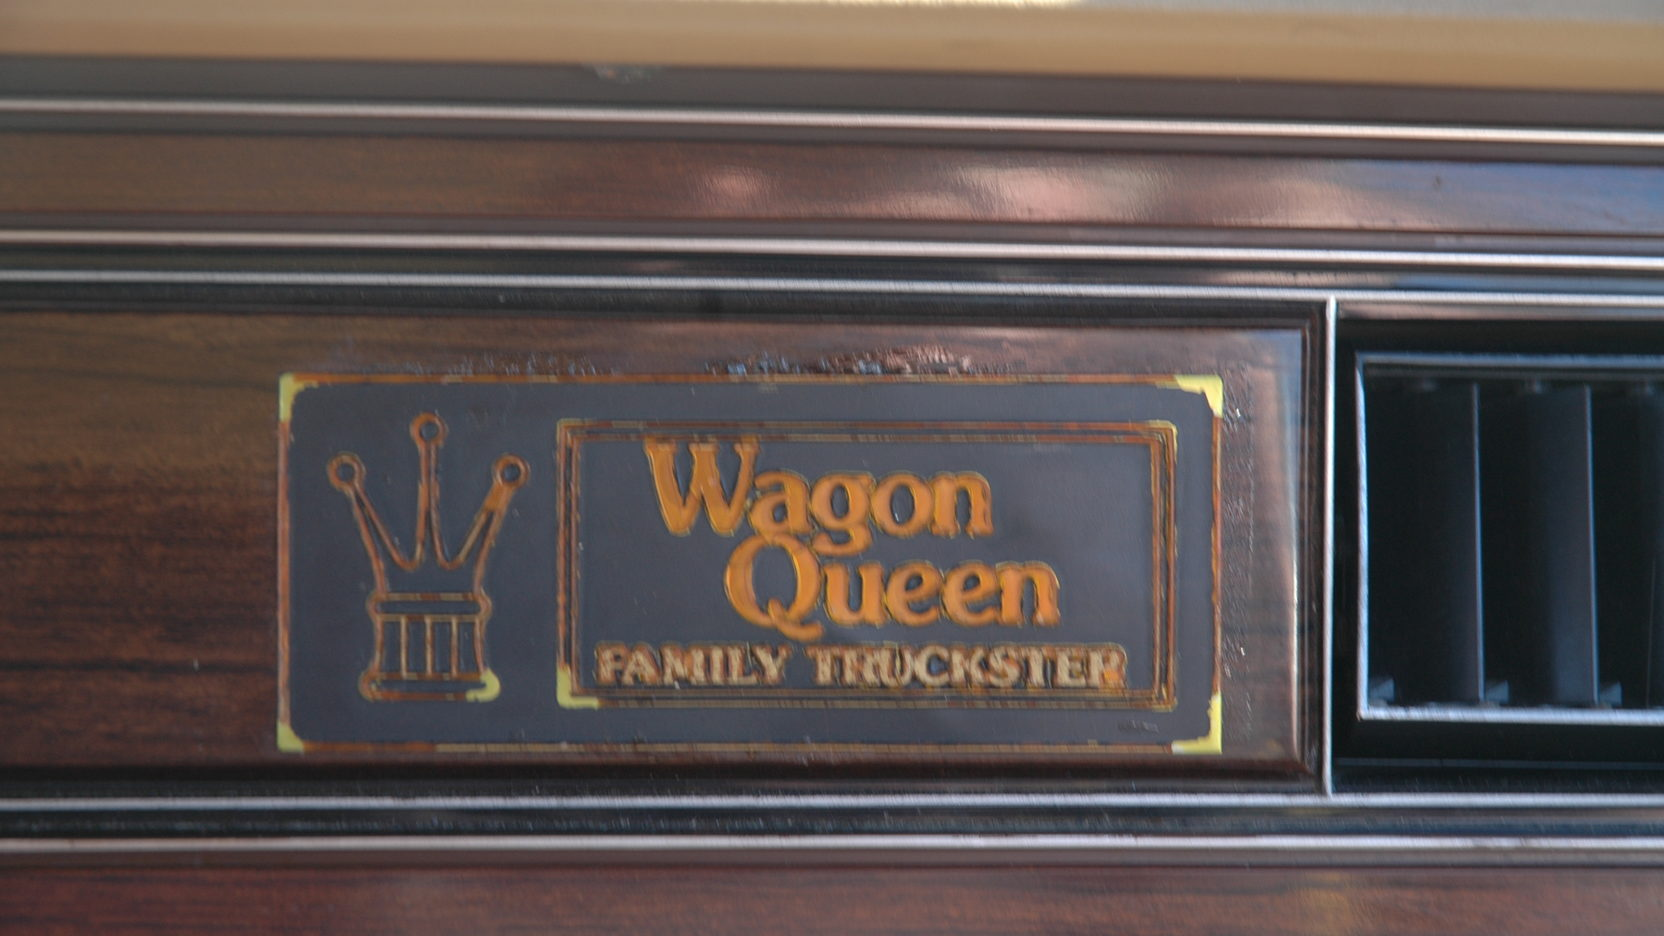 National Lampoon's Family Vacation Wagon Queen Family Truckster